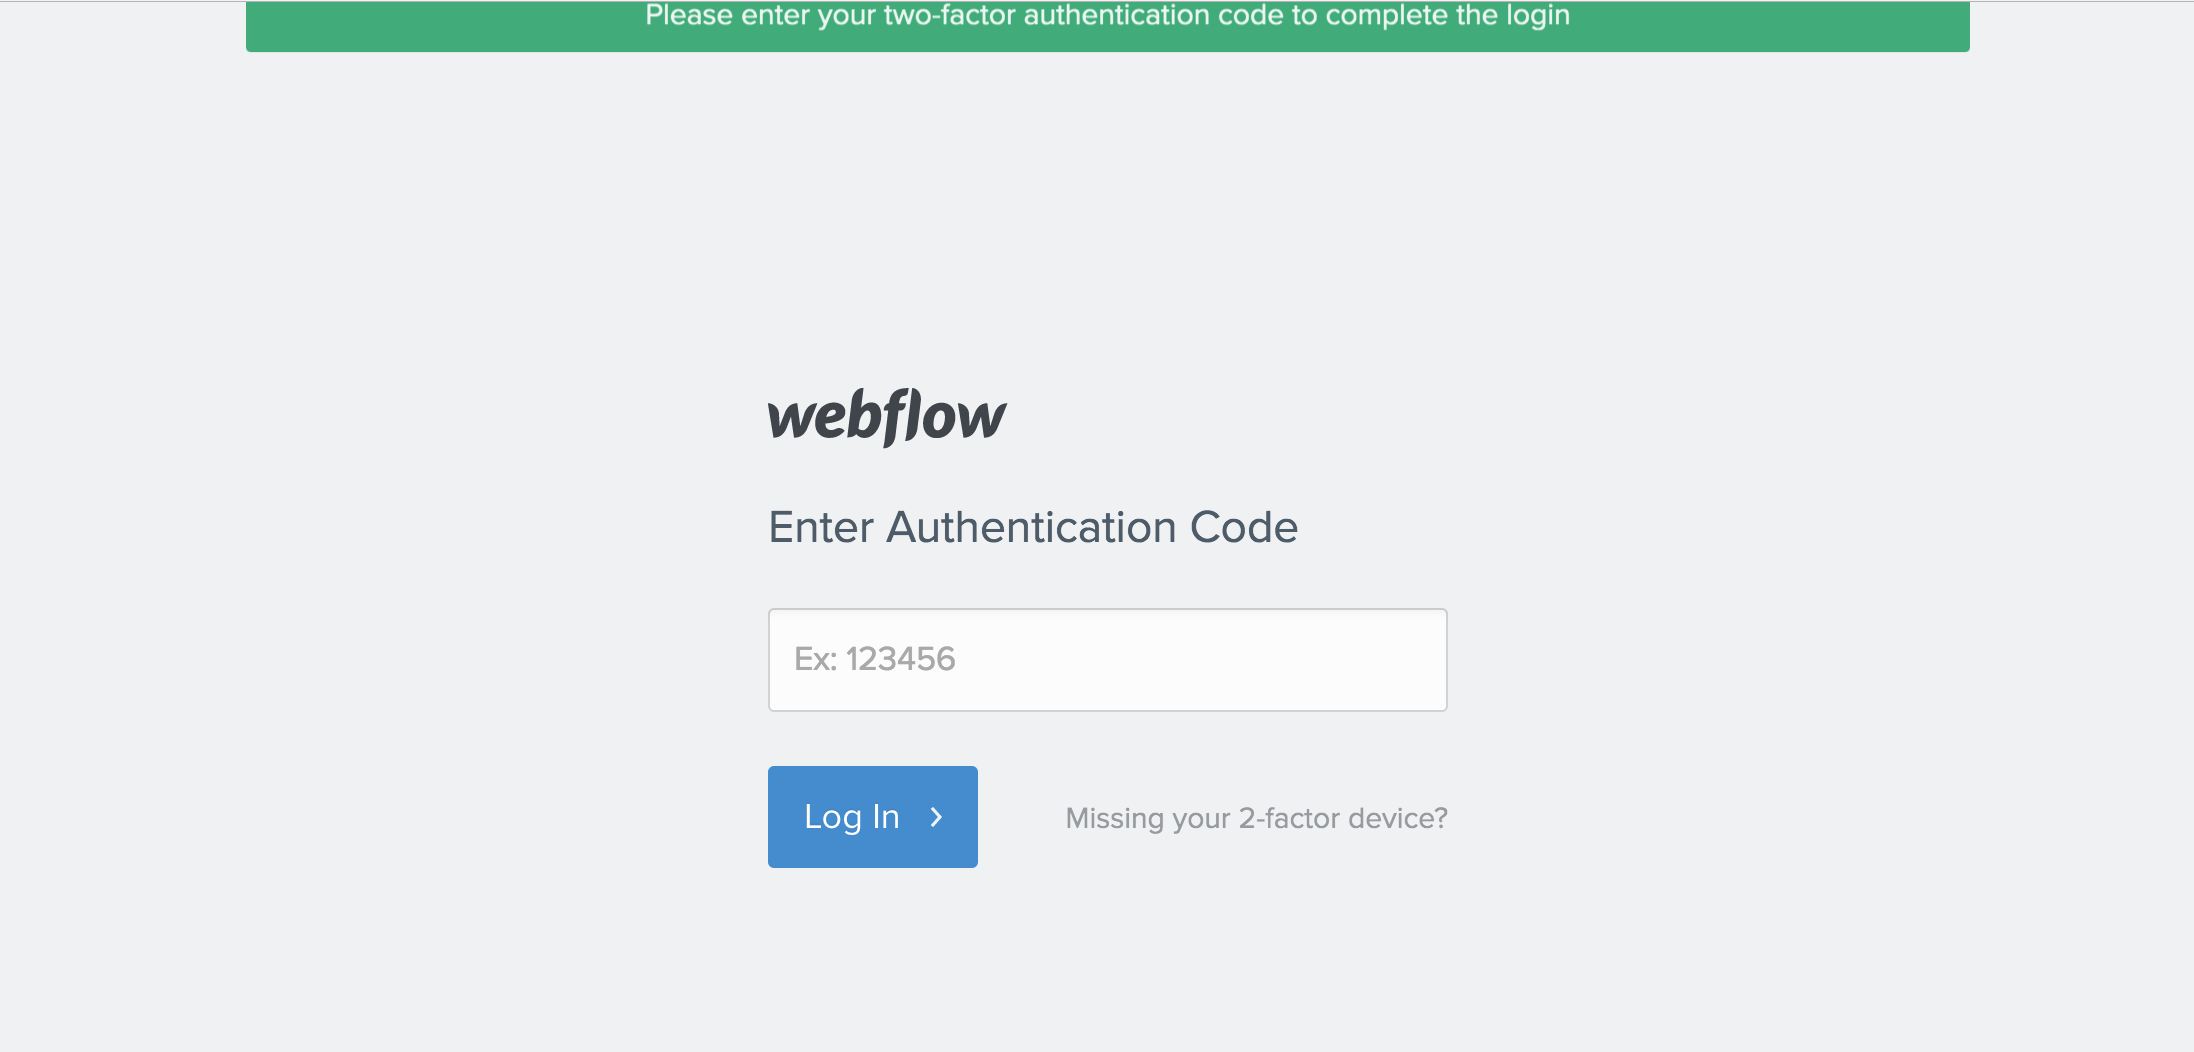 Enter your authentication code to log in.